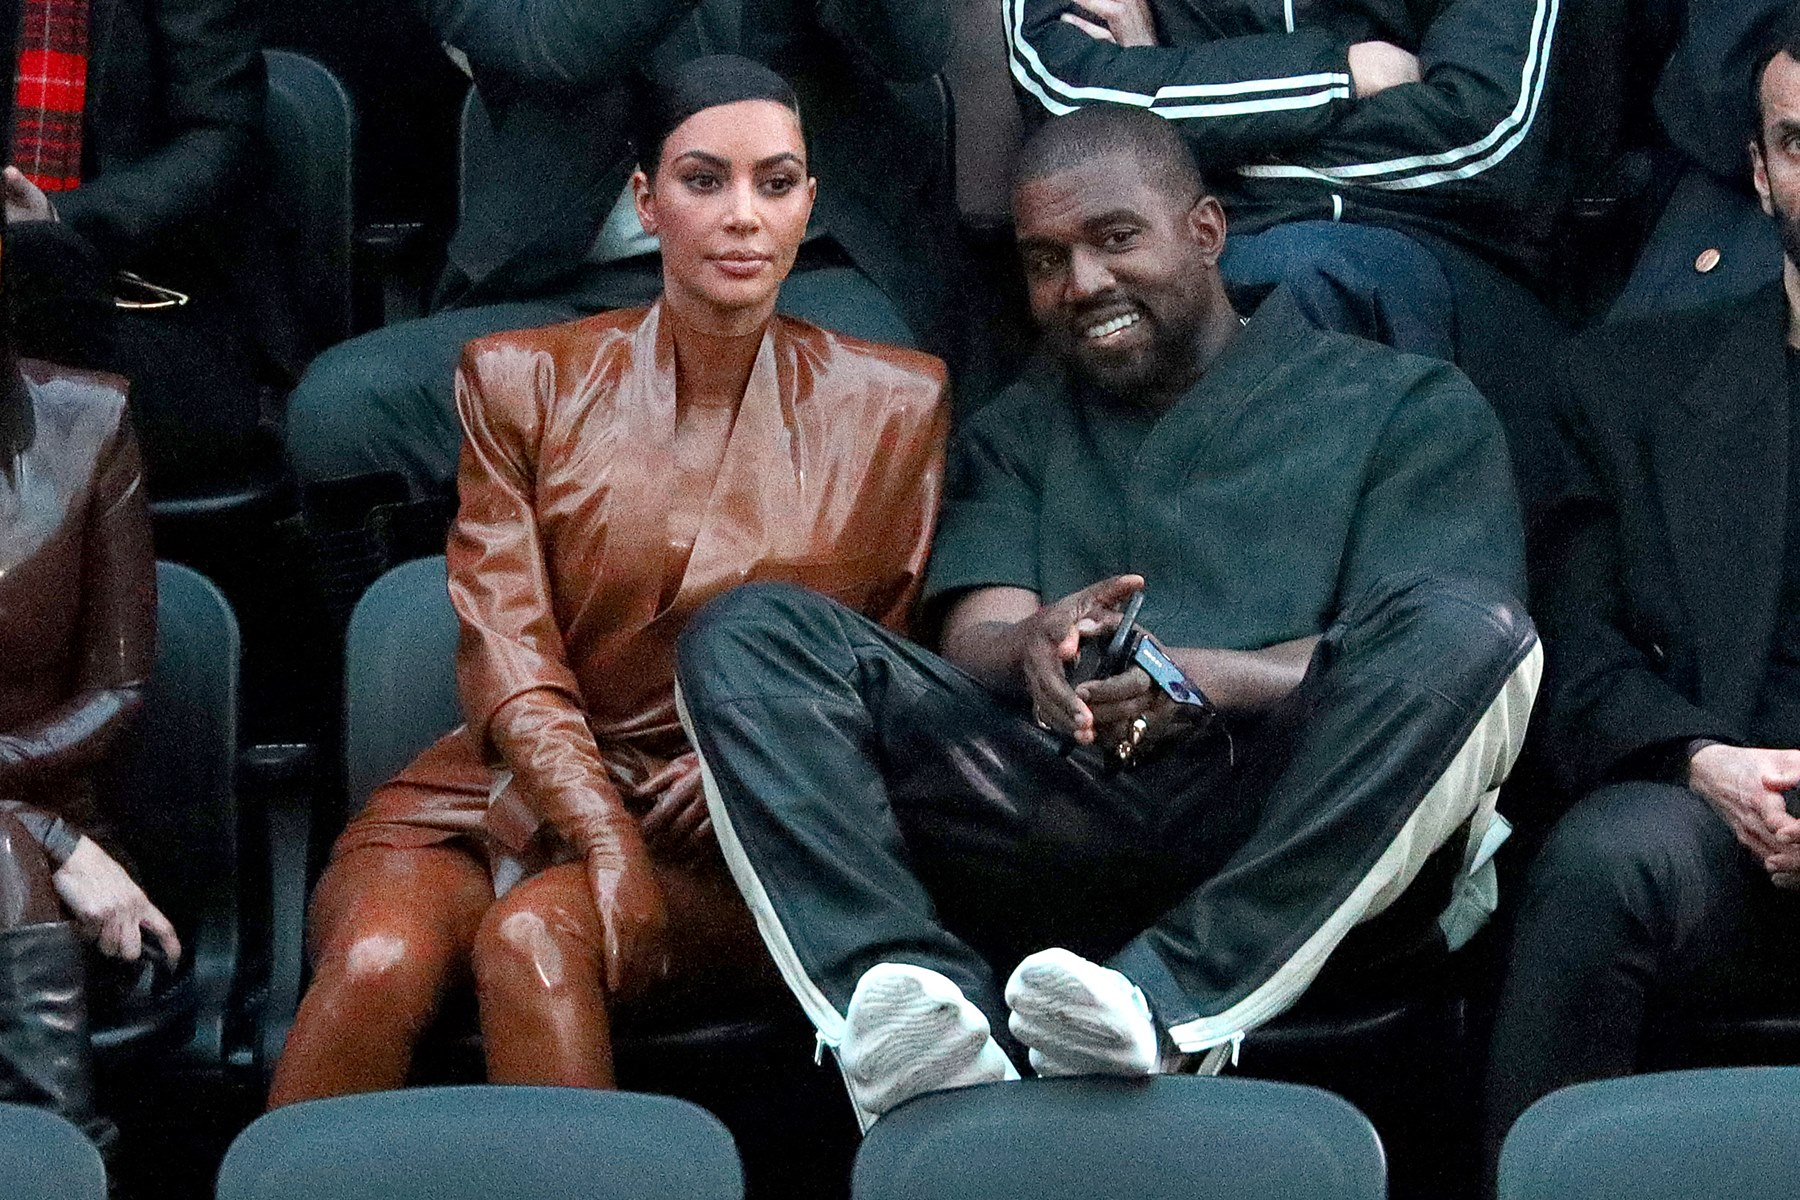 Kim Kardashian, Kanye West trying to save marriage with family vacation